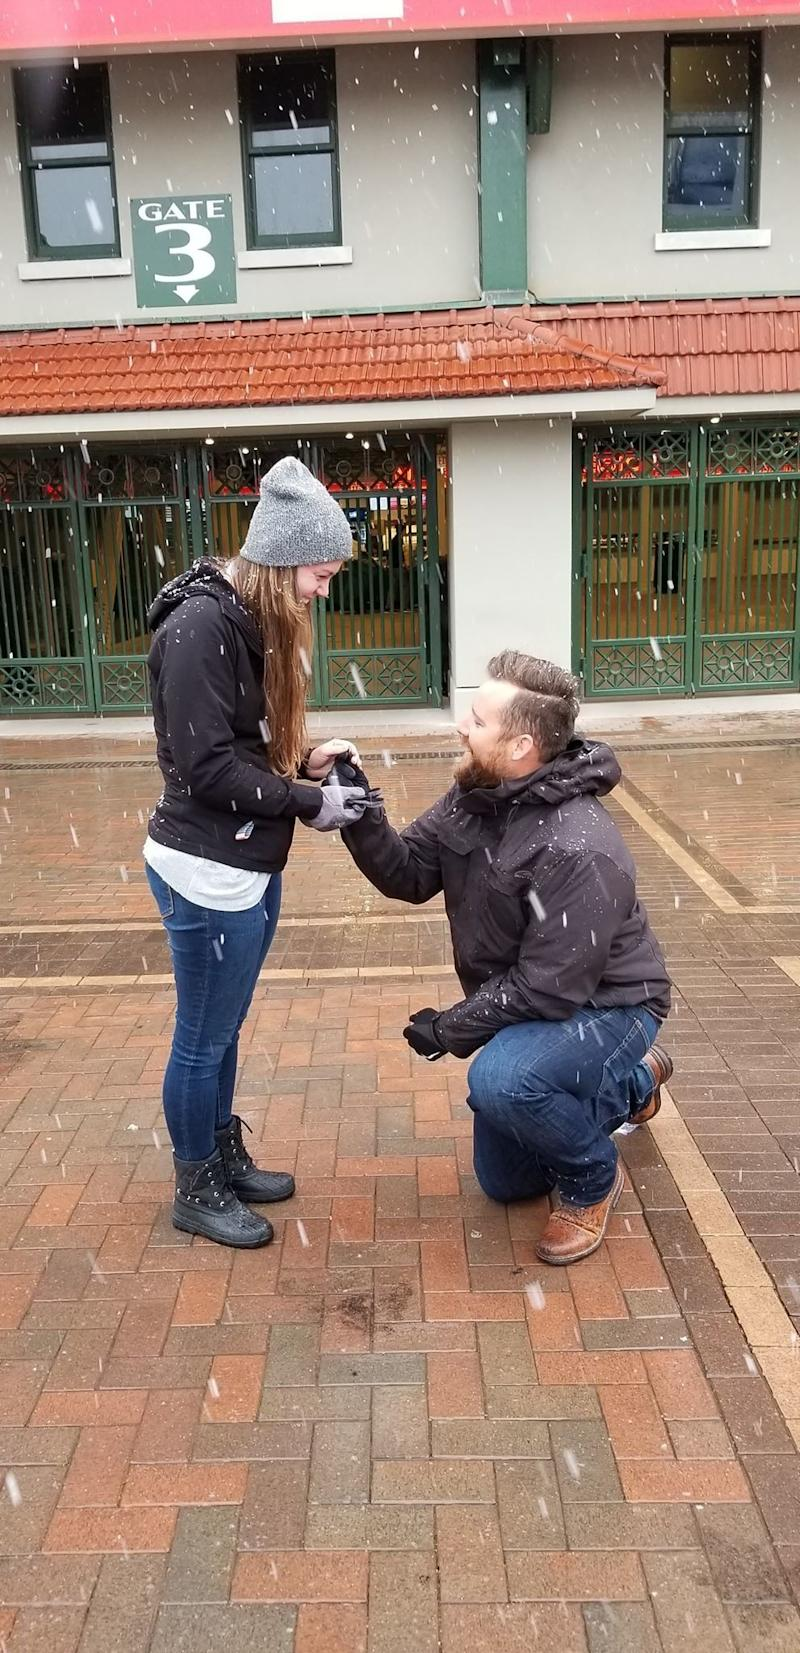 A photo of Clinton Parkinson down on one knee in front of his Chicago-native girlfriend Clohe Ludwig. (Credit: Clinton Parkinson)